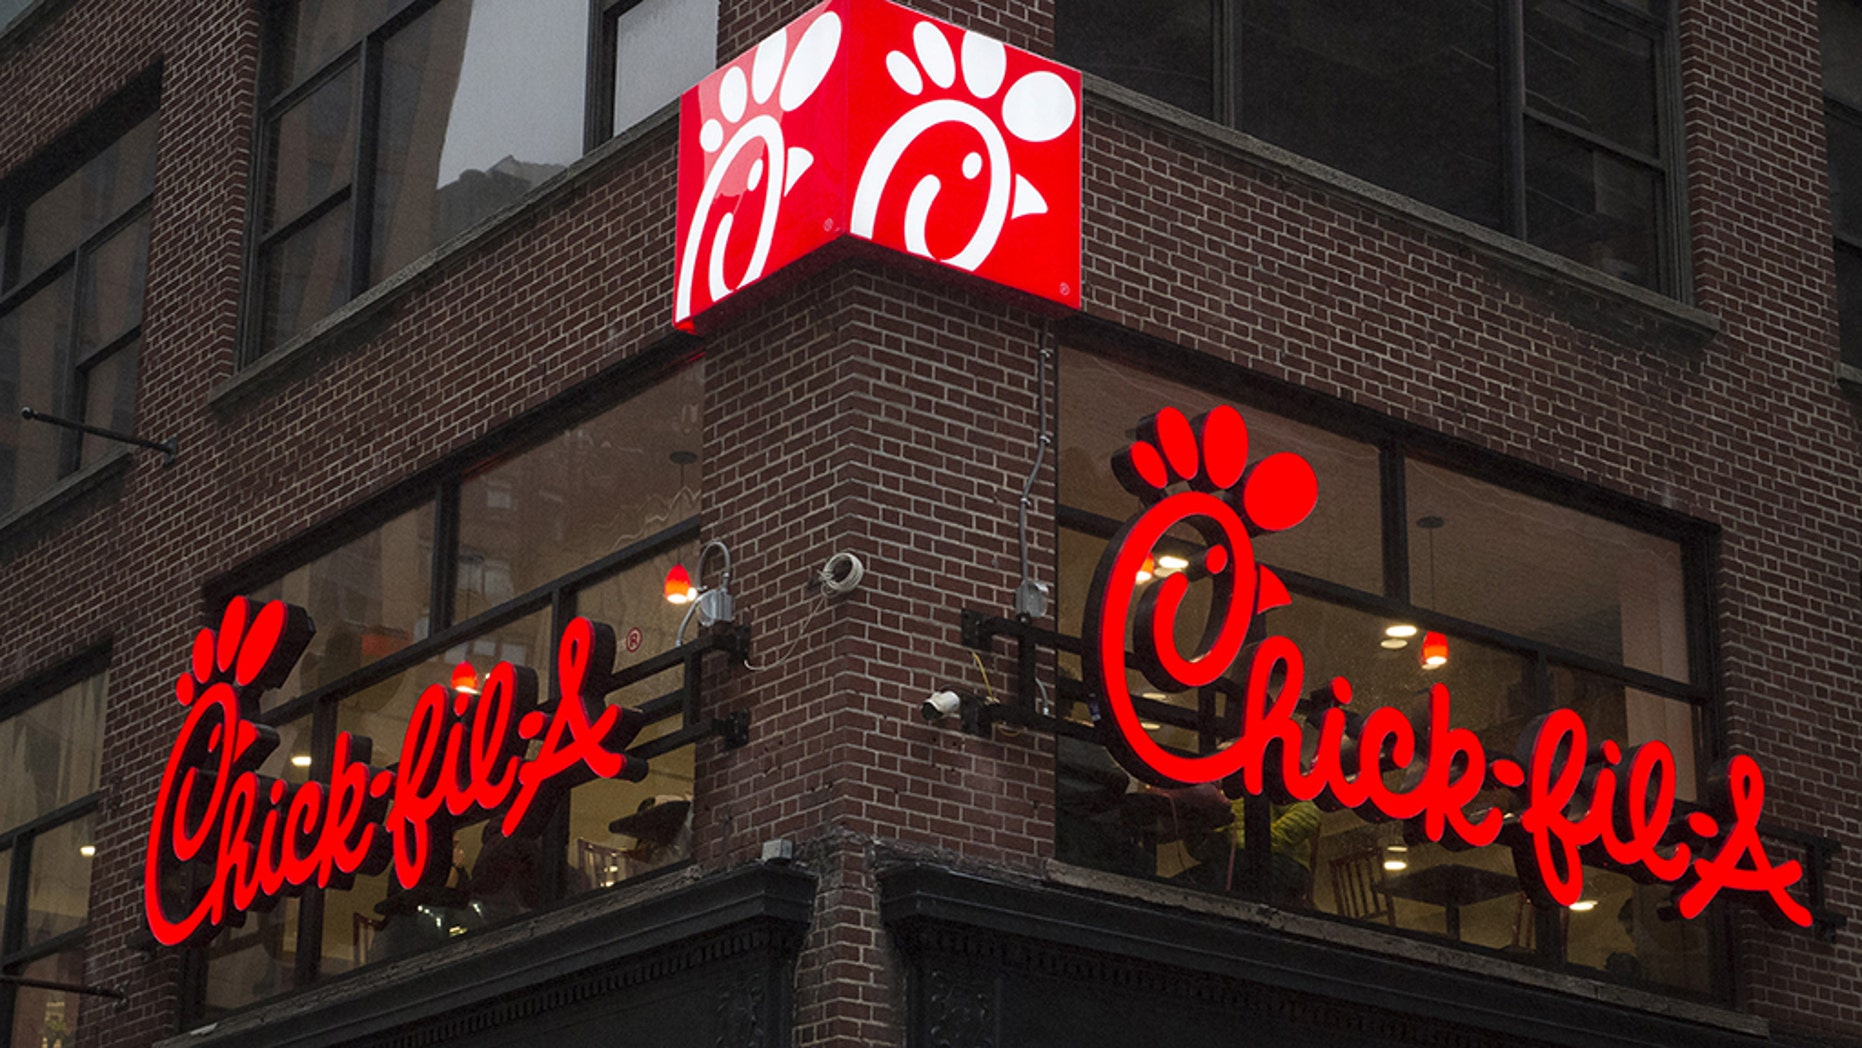 Activists have criticized the Pittsburgh Marathon for partnering with Chick-fil-A.